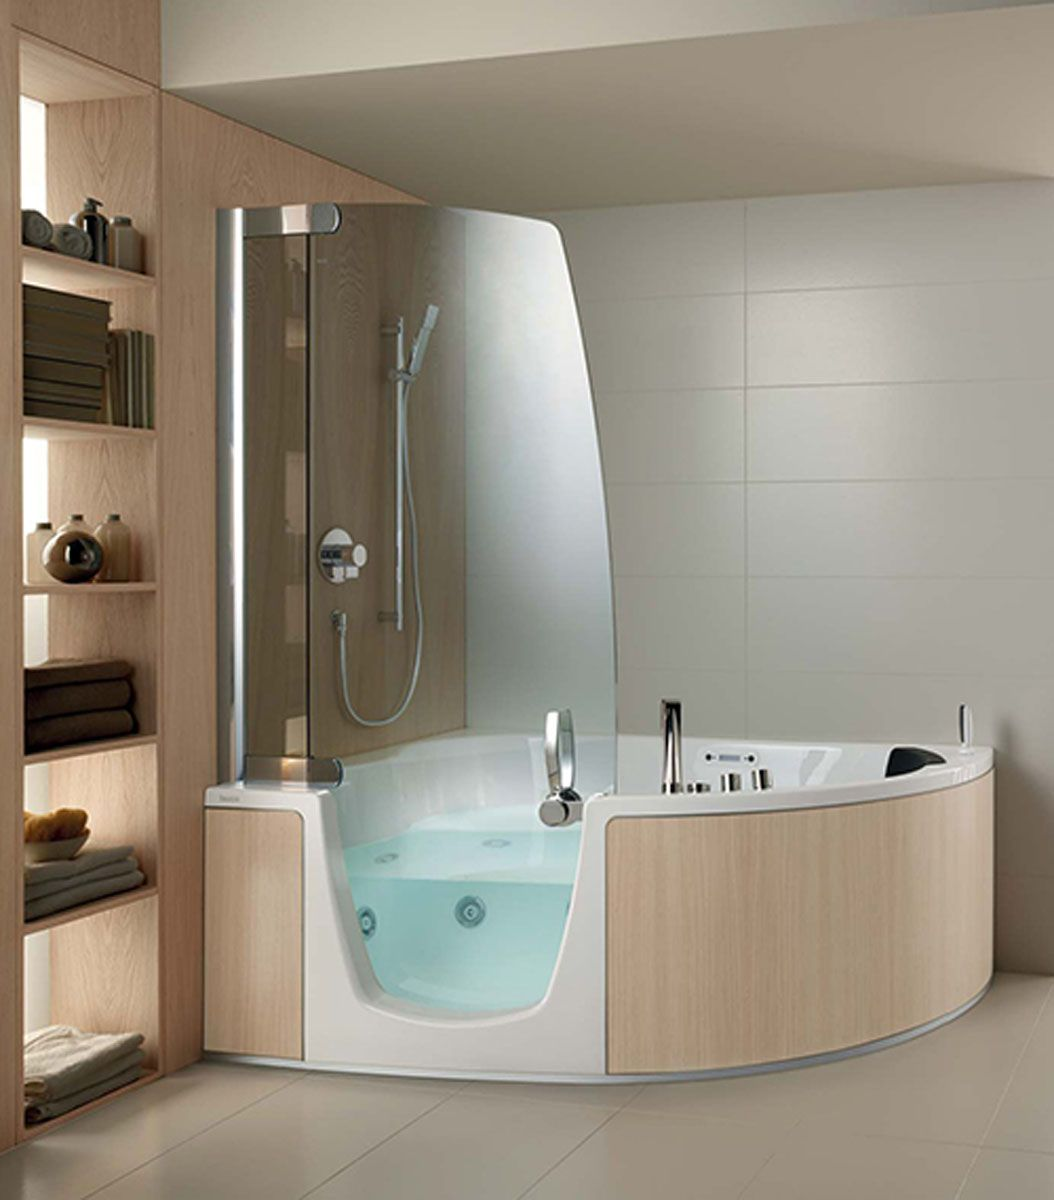 Small Corner Bathtub with Shower | Hot Tubs & Jacuzzis | Pinterest ...